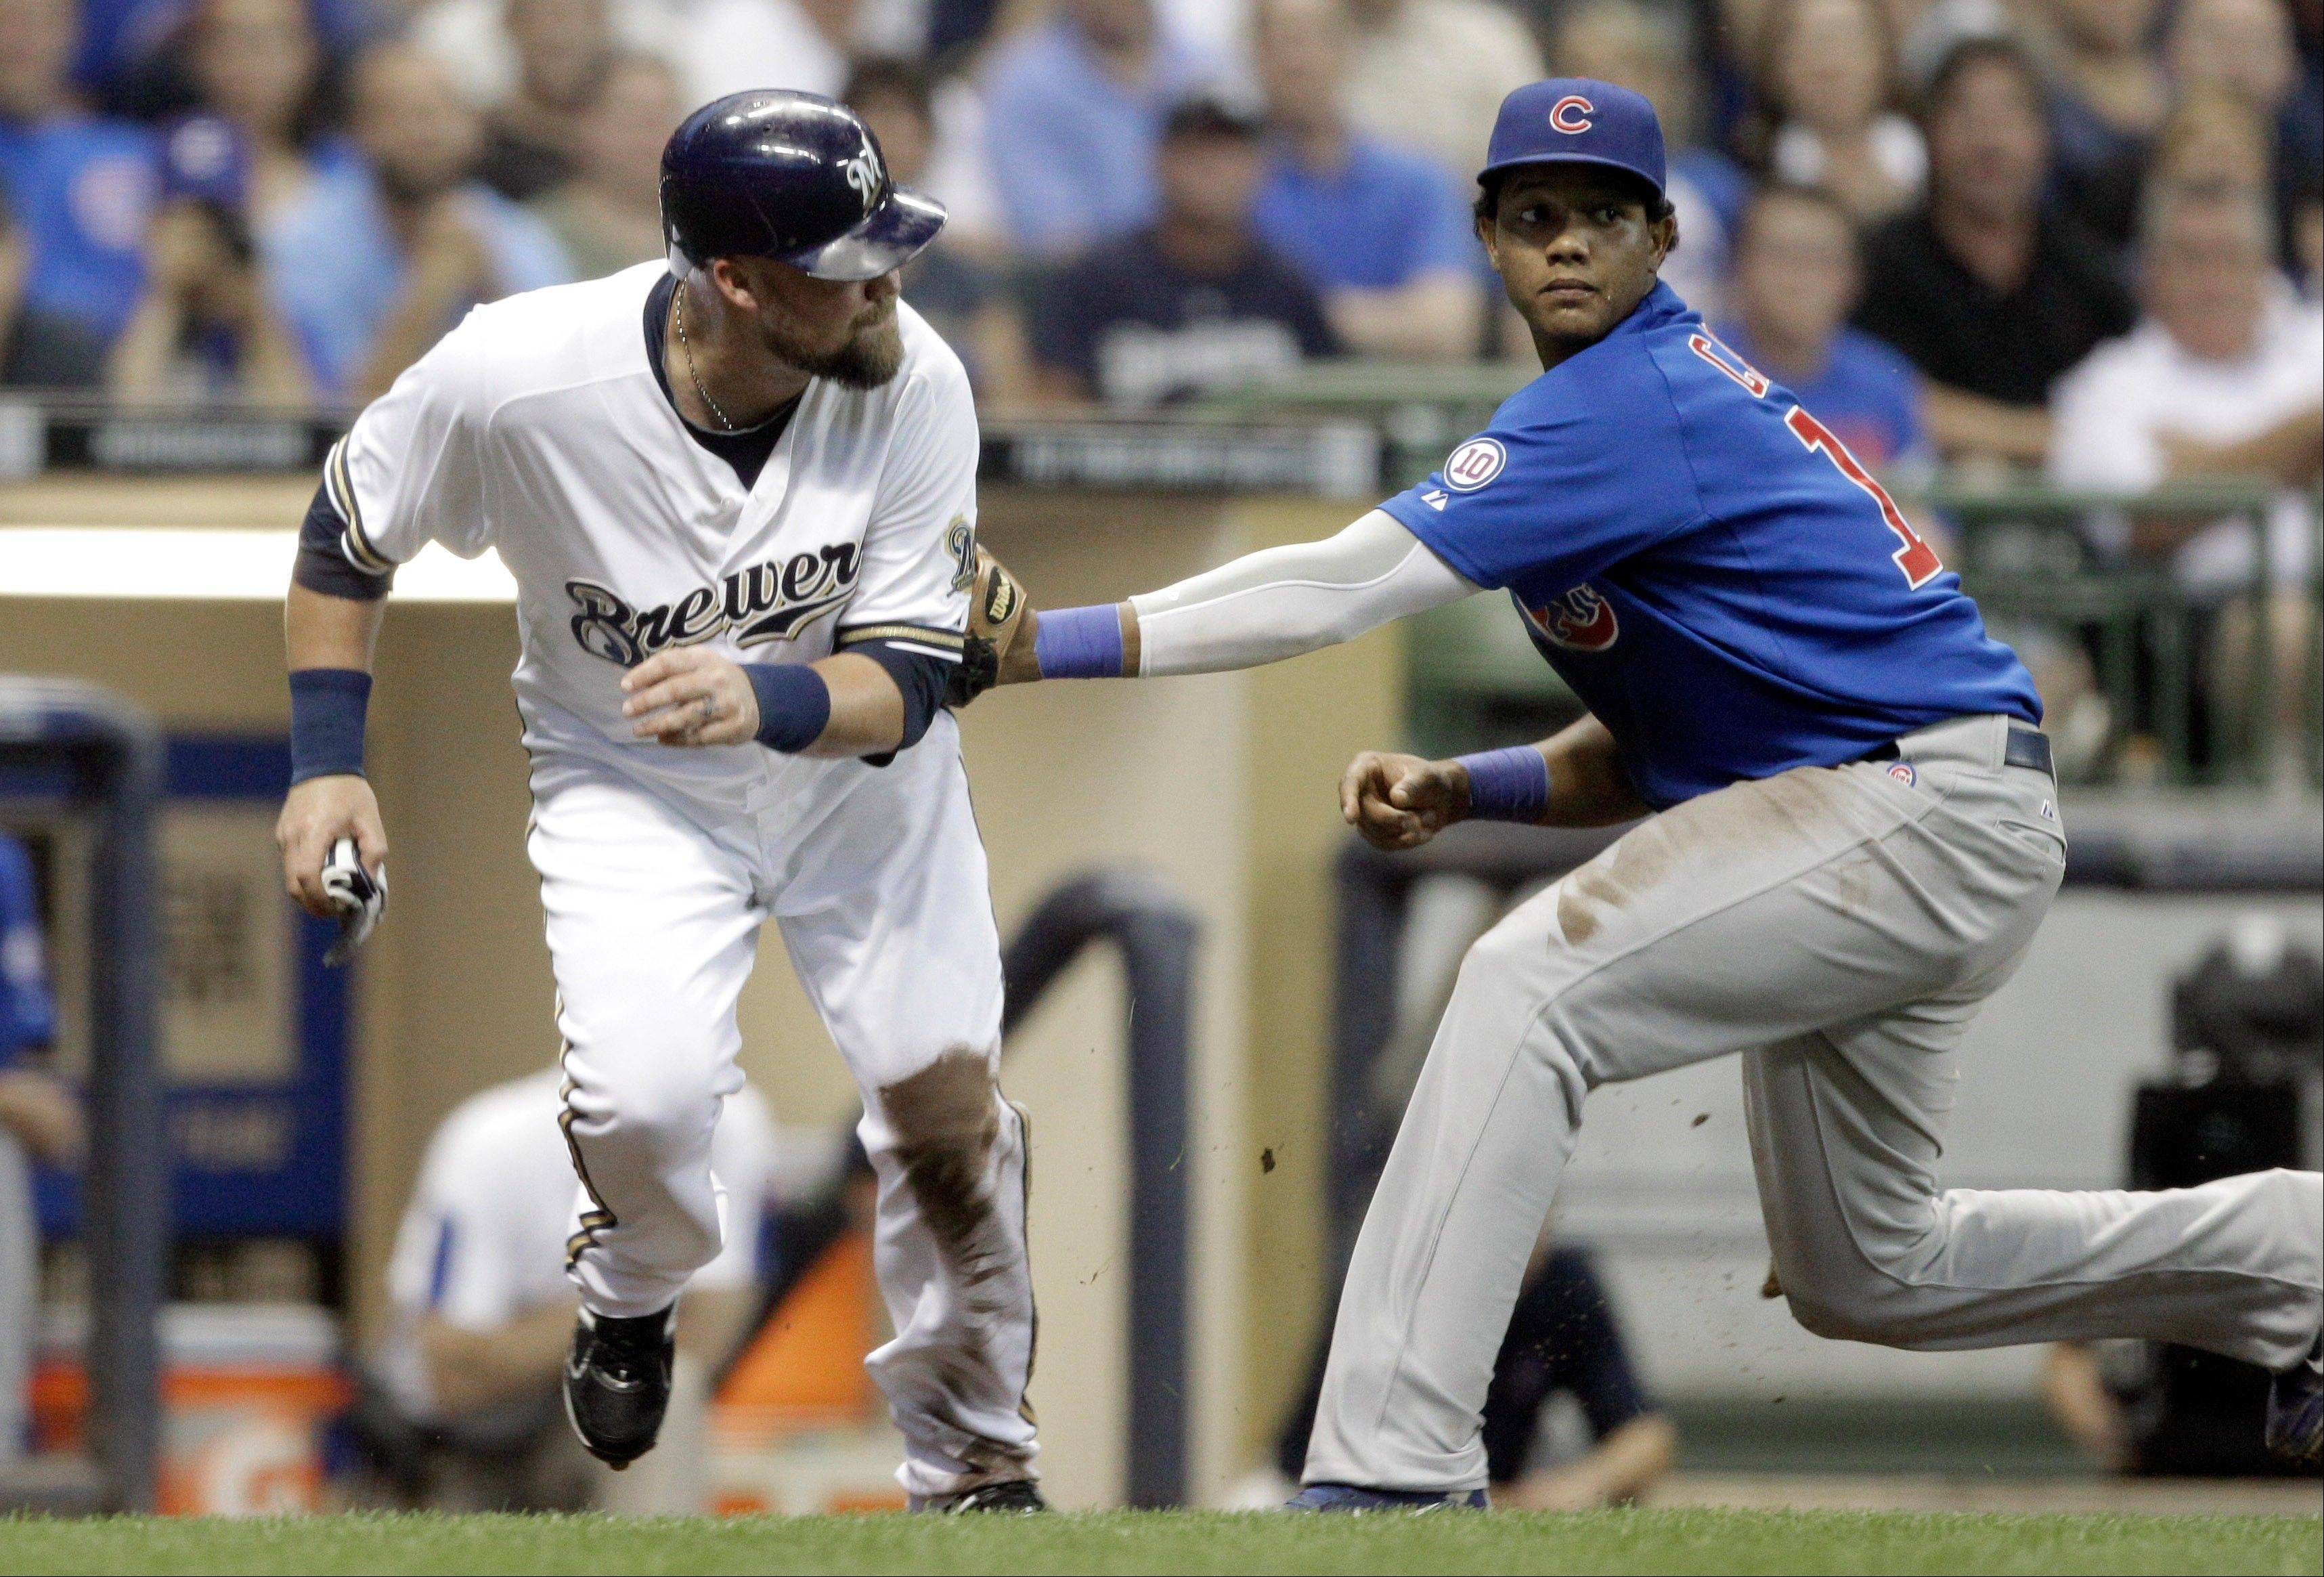 Casey McGehee is tagged out by Starlin Castro after being caught in a rundown during the second inning Wednesday.